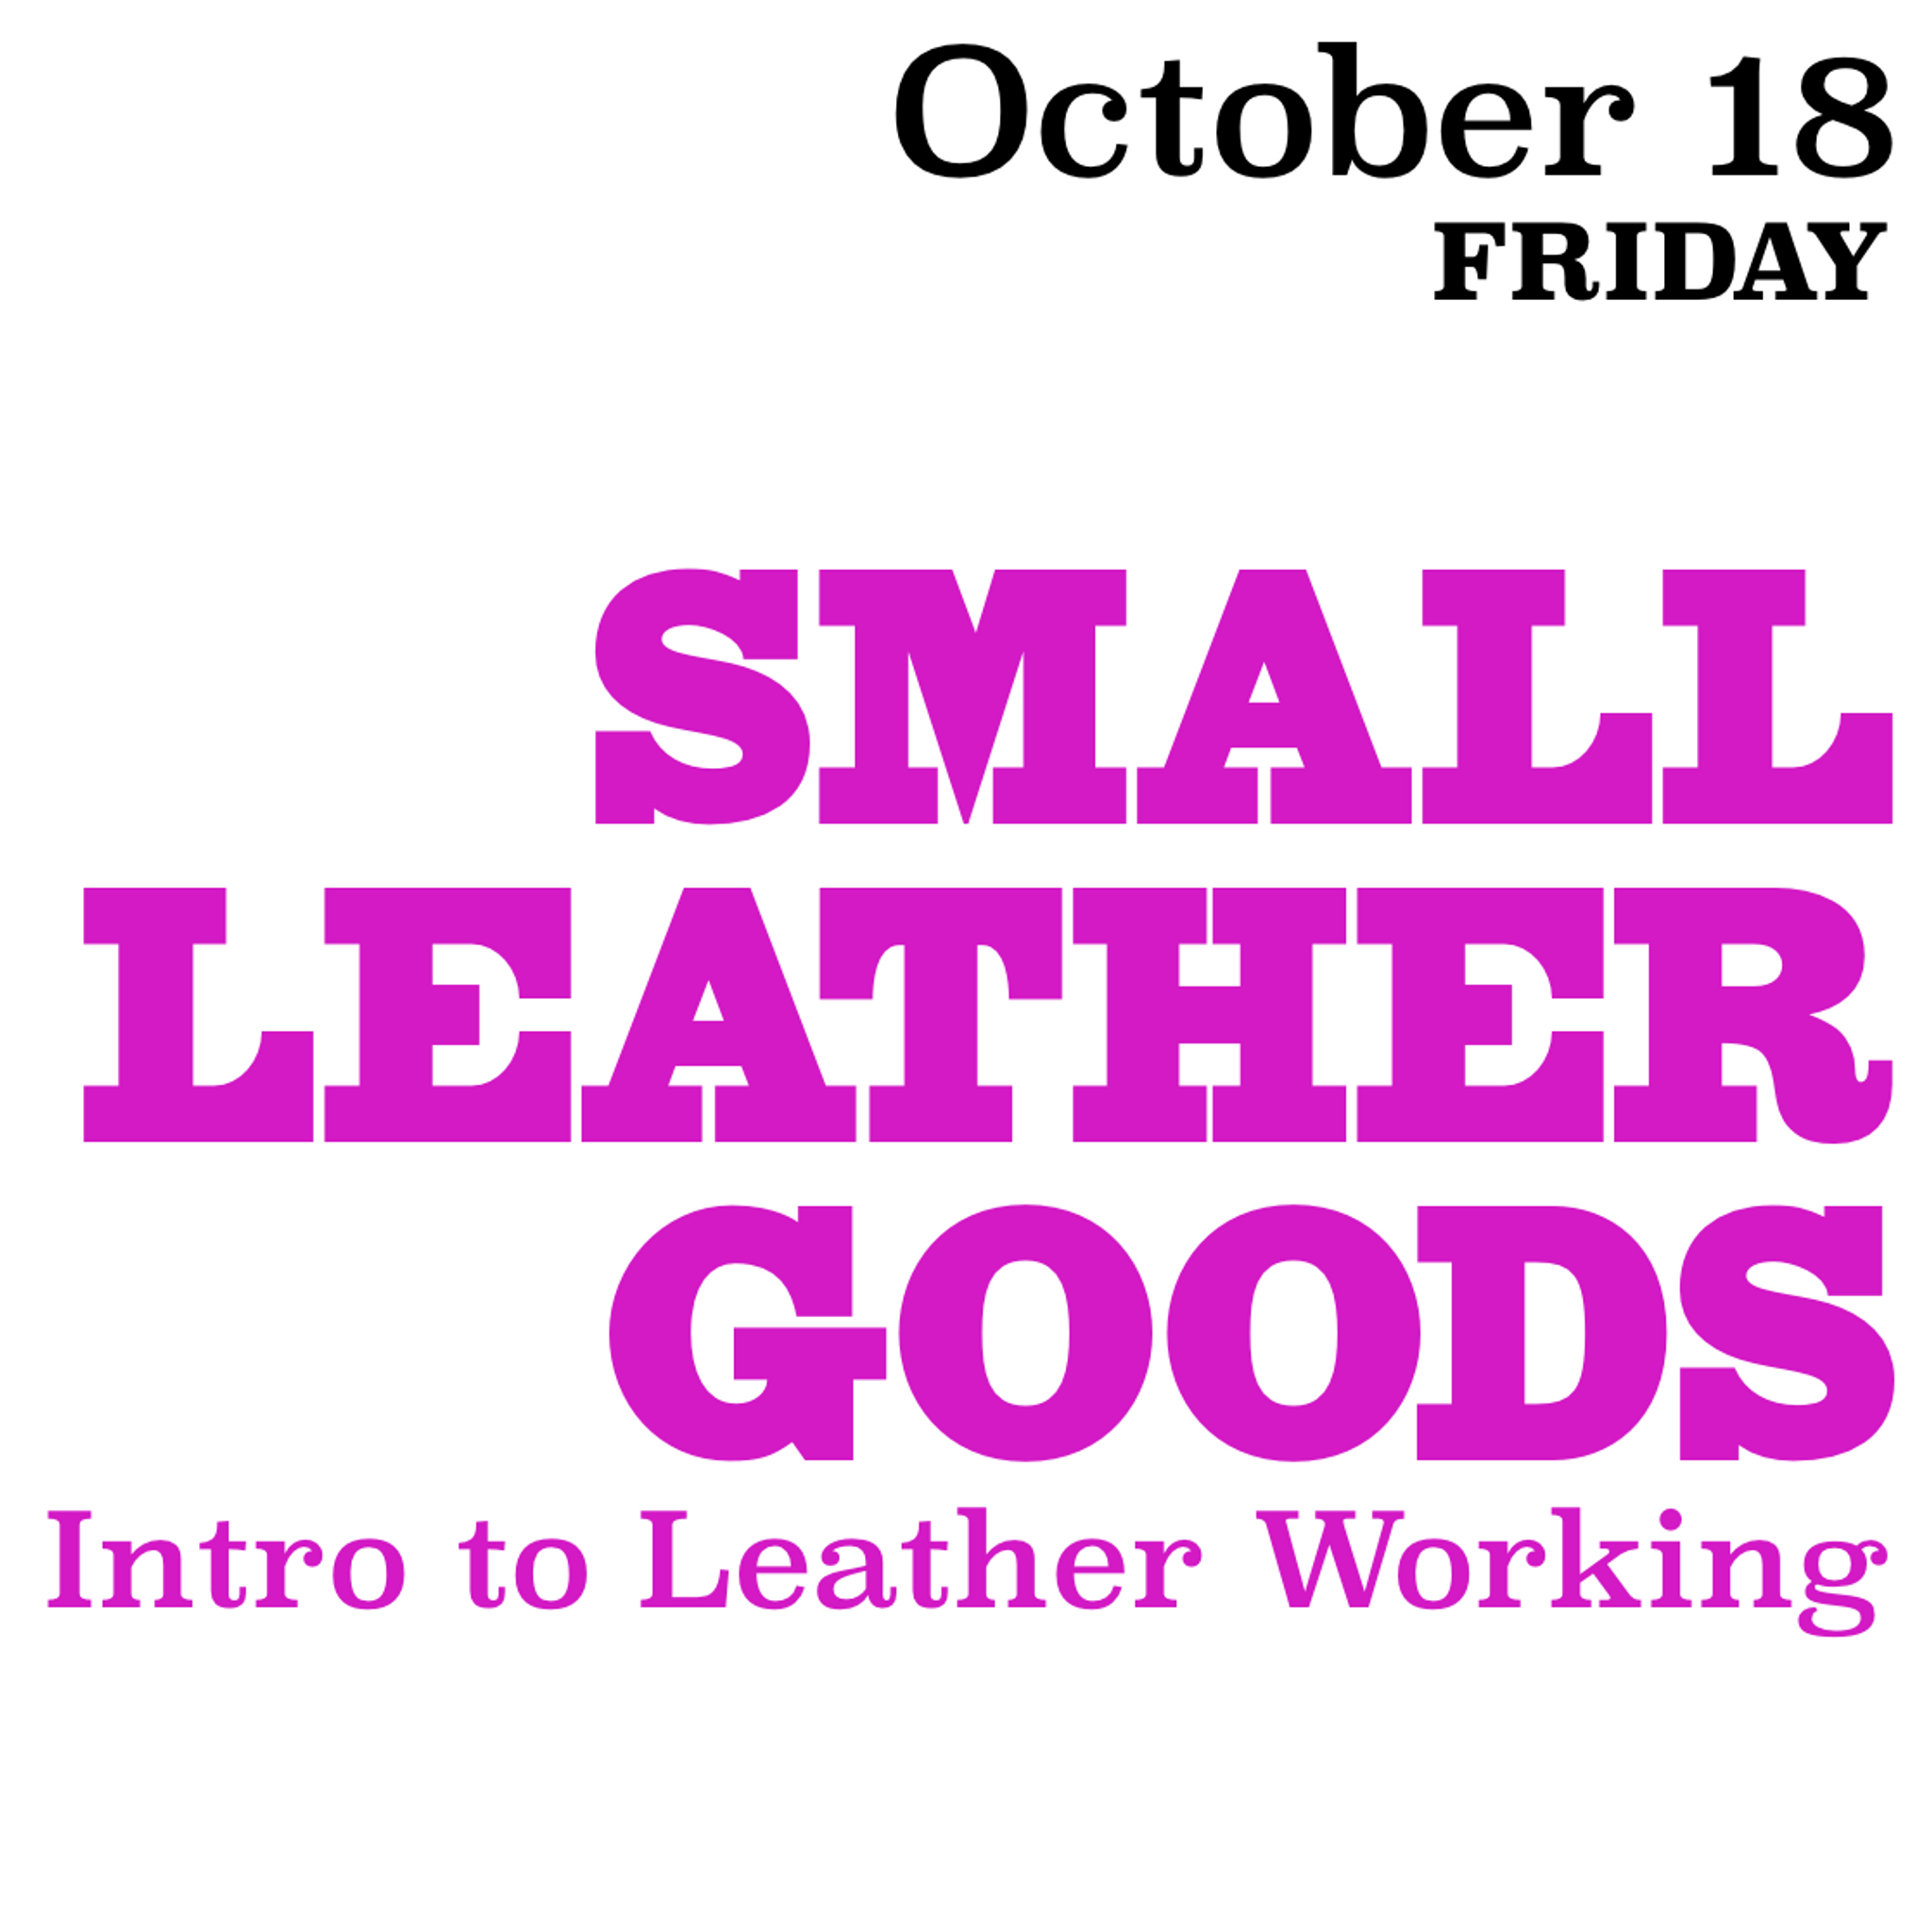 Small Leather Goods: Intro to Leather Working October 18